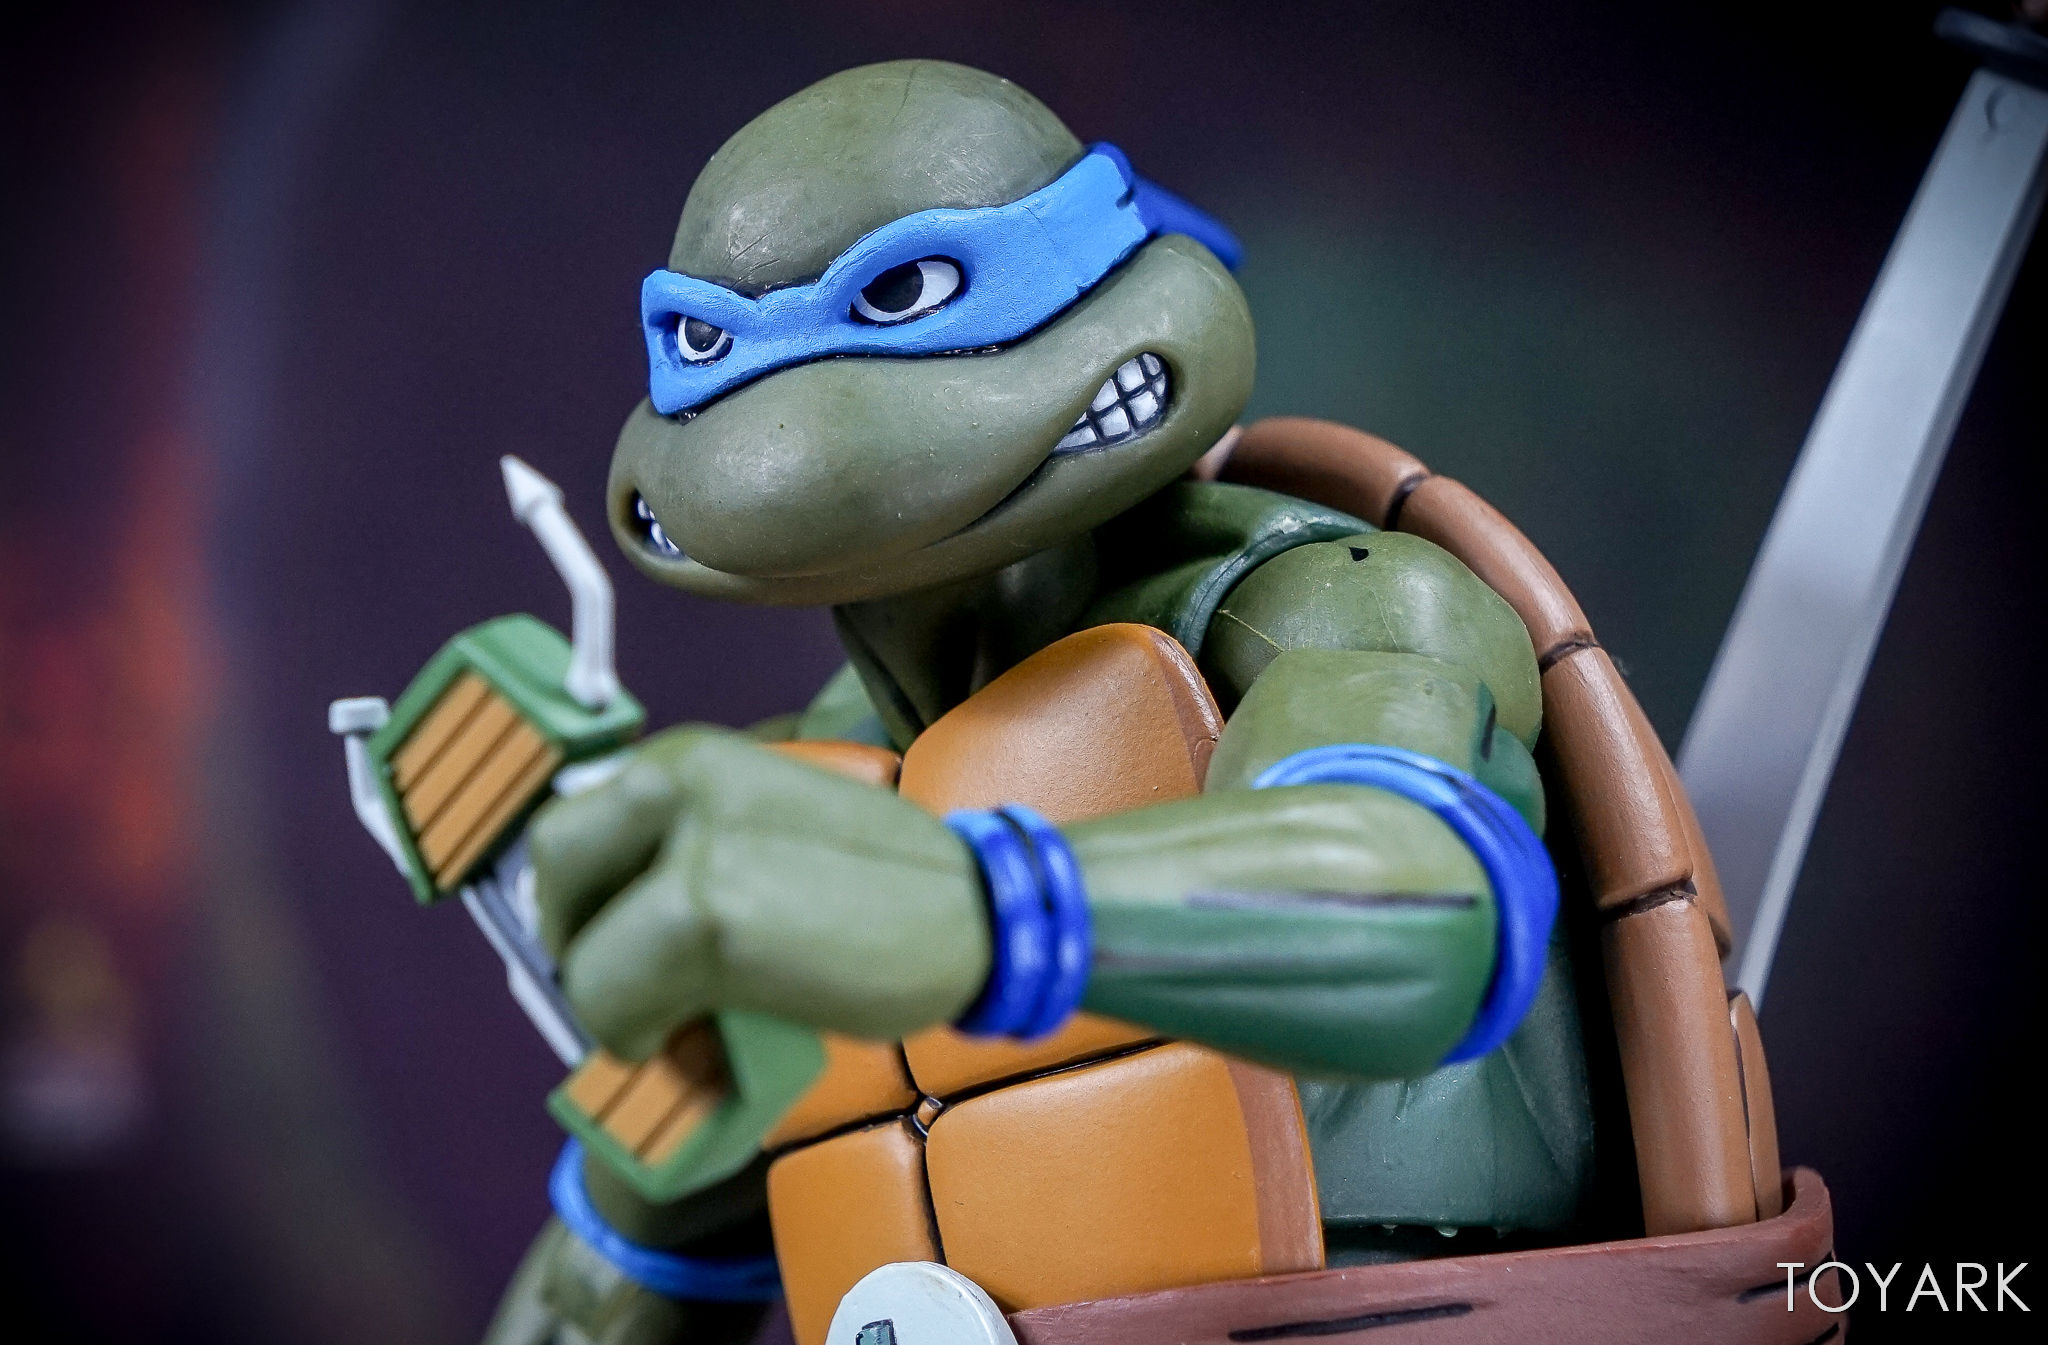 http://news.toyark.com/wp-content/uploads/sites/4/2017/07/NECA-SDCC-2017-Toon-TMNT-028.jpg